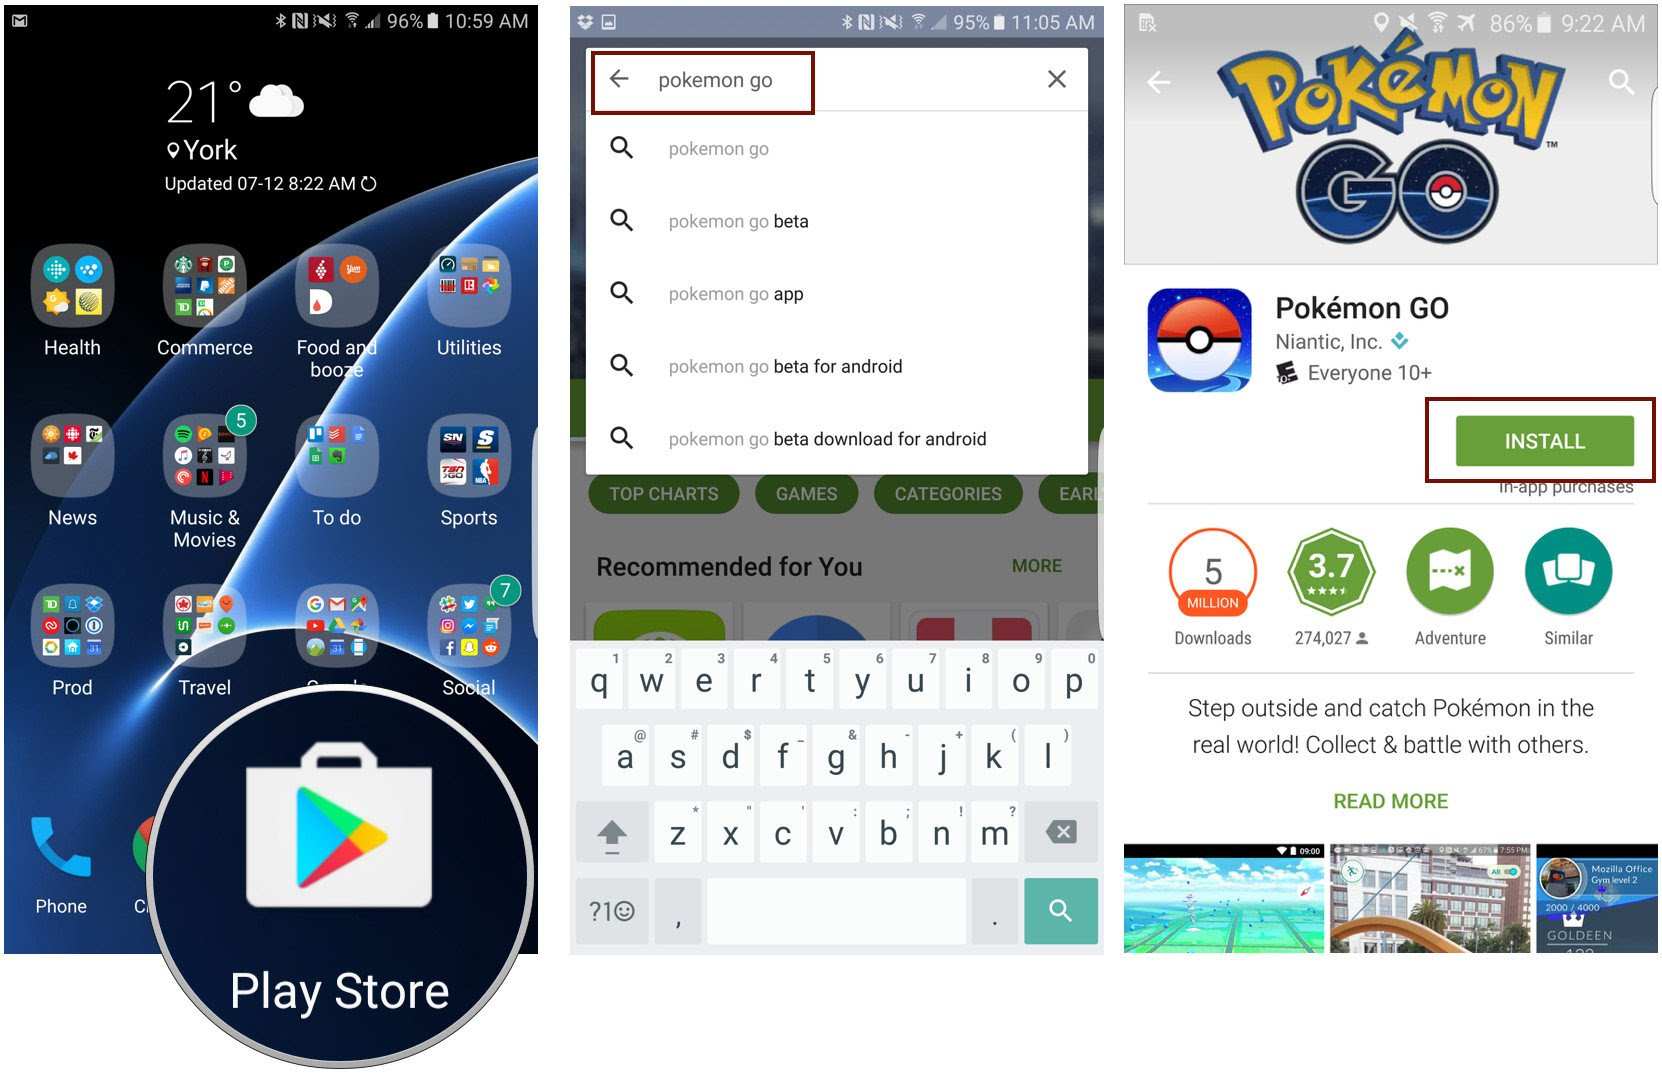 How to download and install Pokémon Go